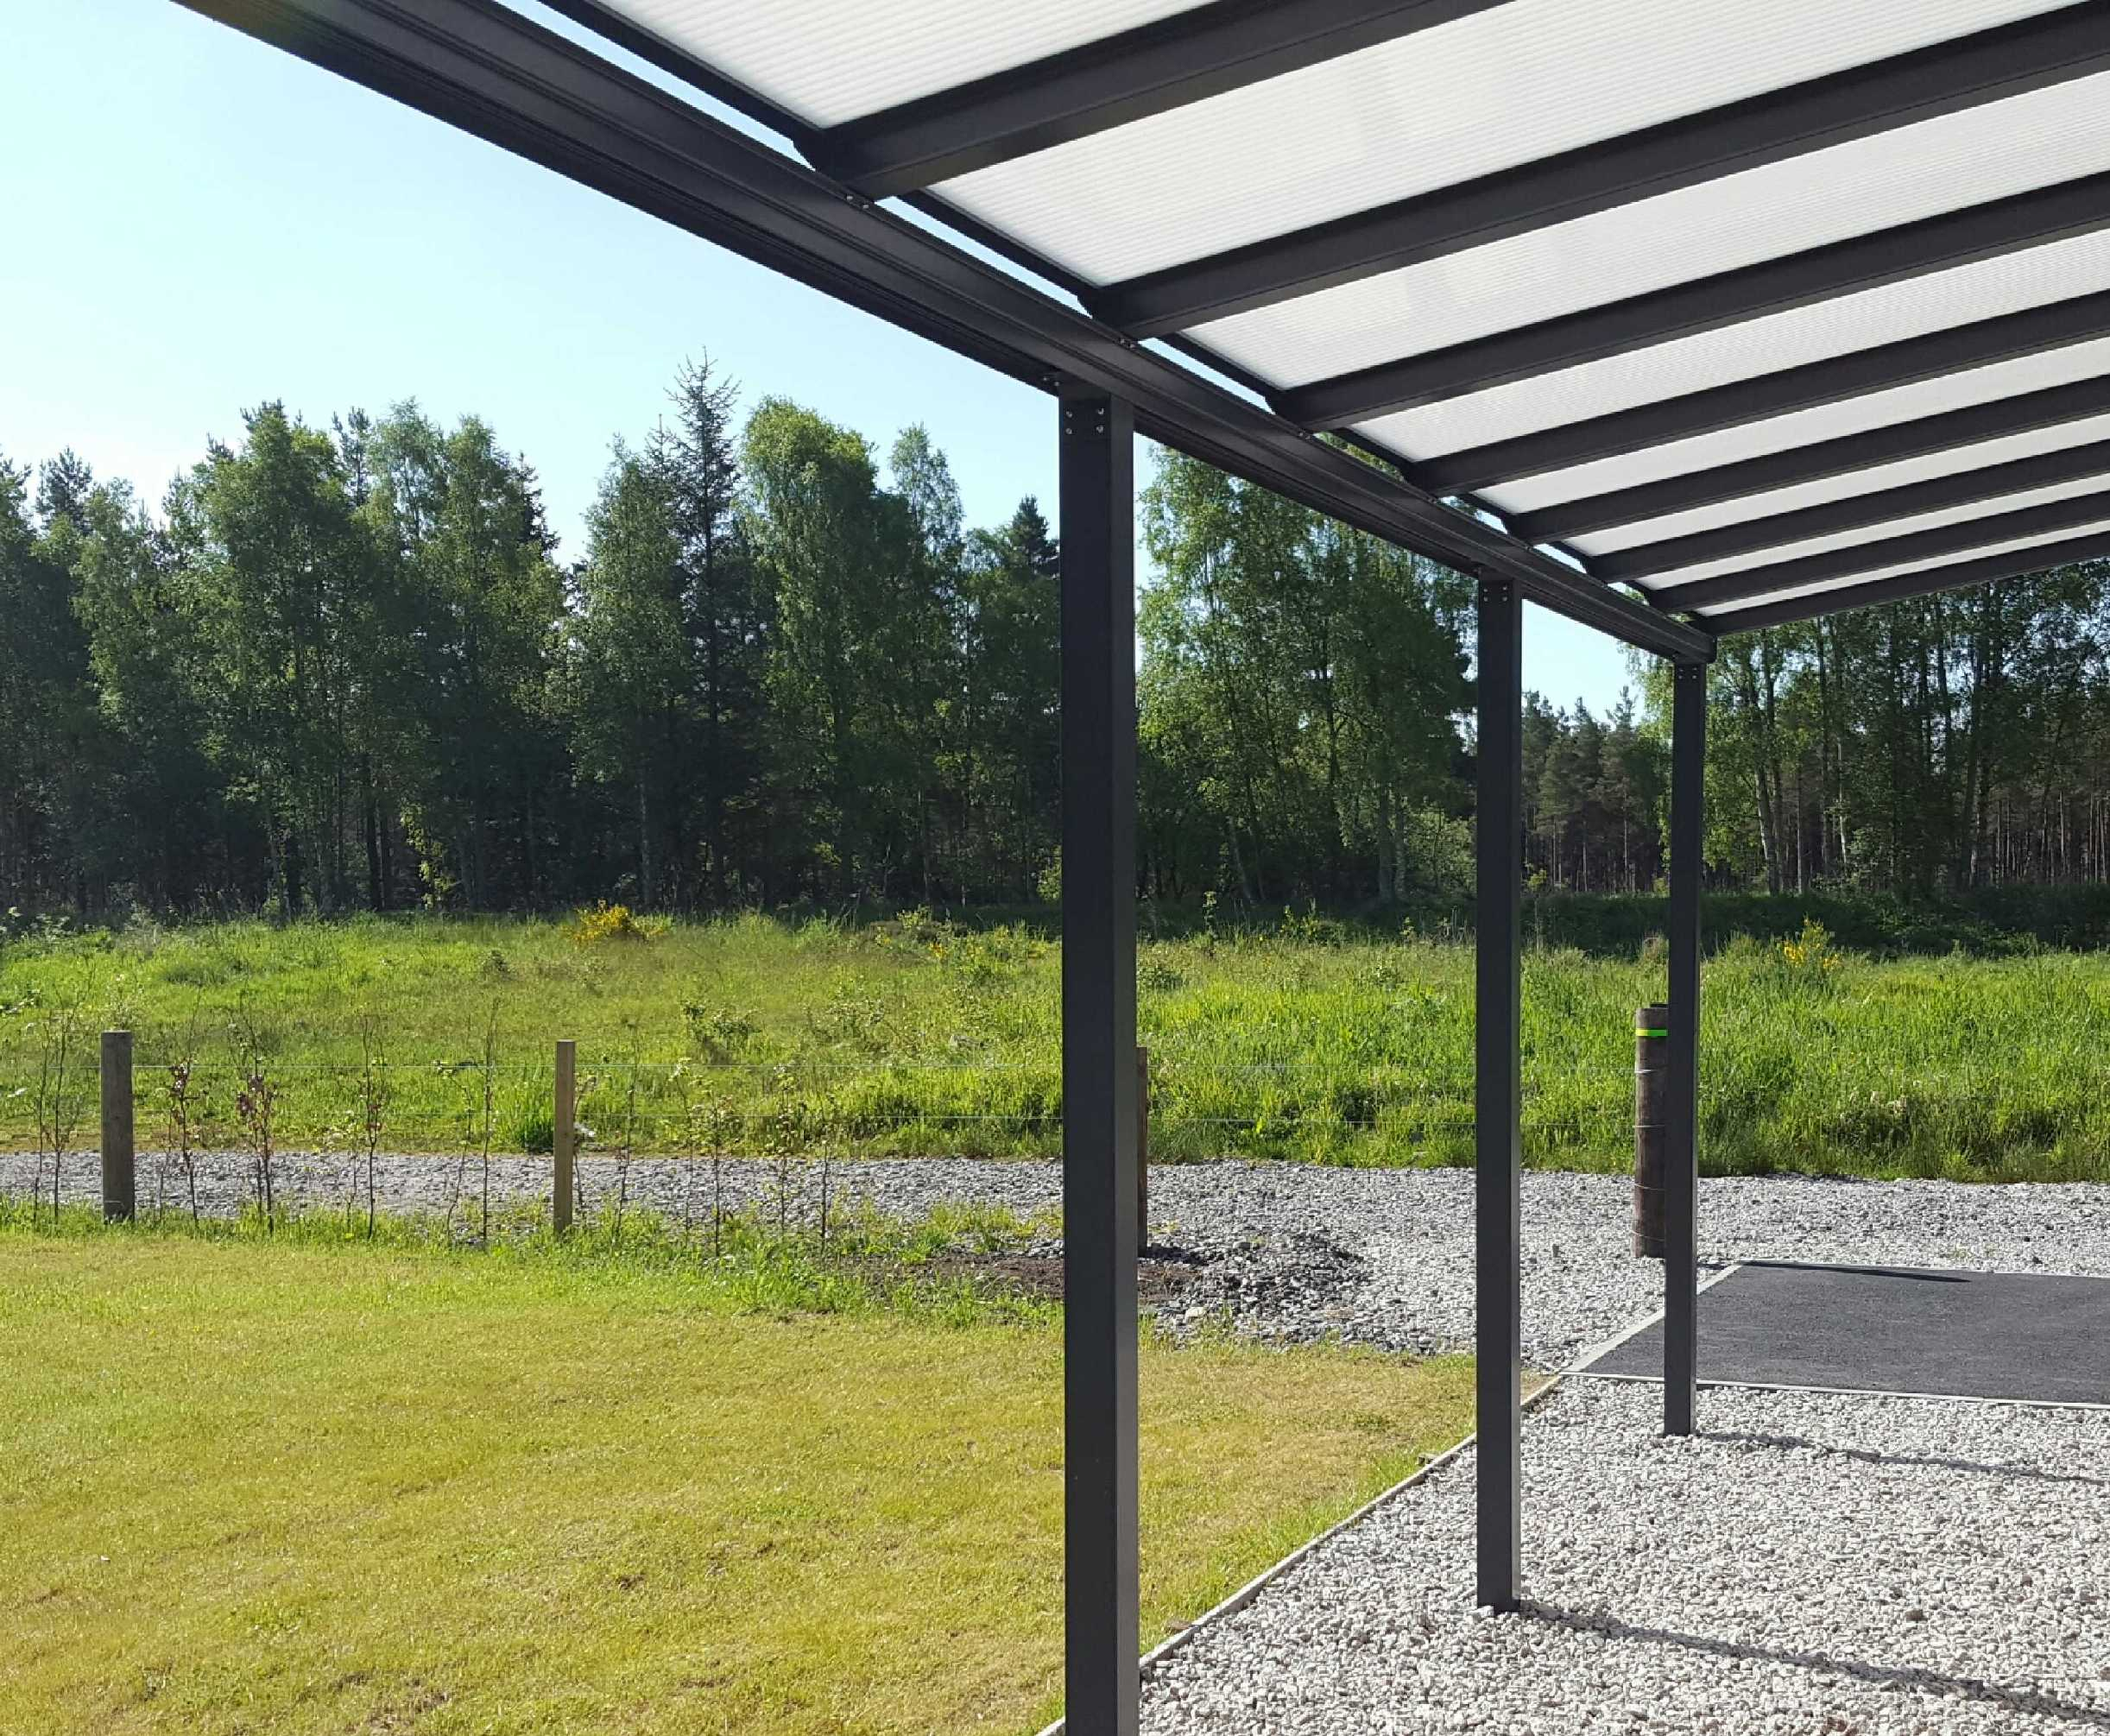 Omega Smart Lean-To Canopy, Anthracite Grey, 16mm Polycarbonate Glazing - 6.3m (W) x 3.5m (P), (4) Supporting Posts